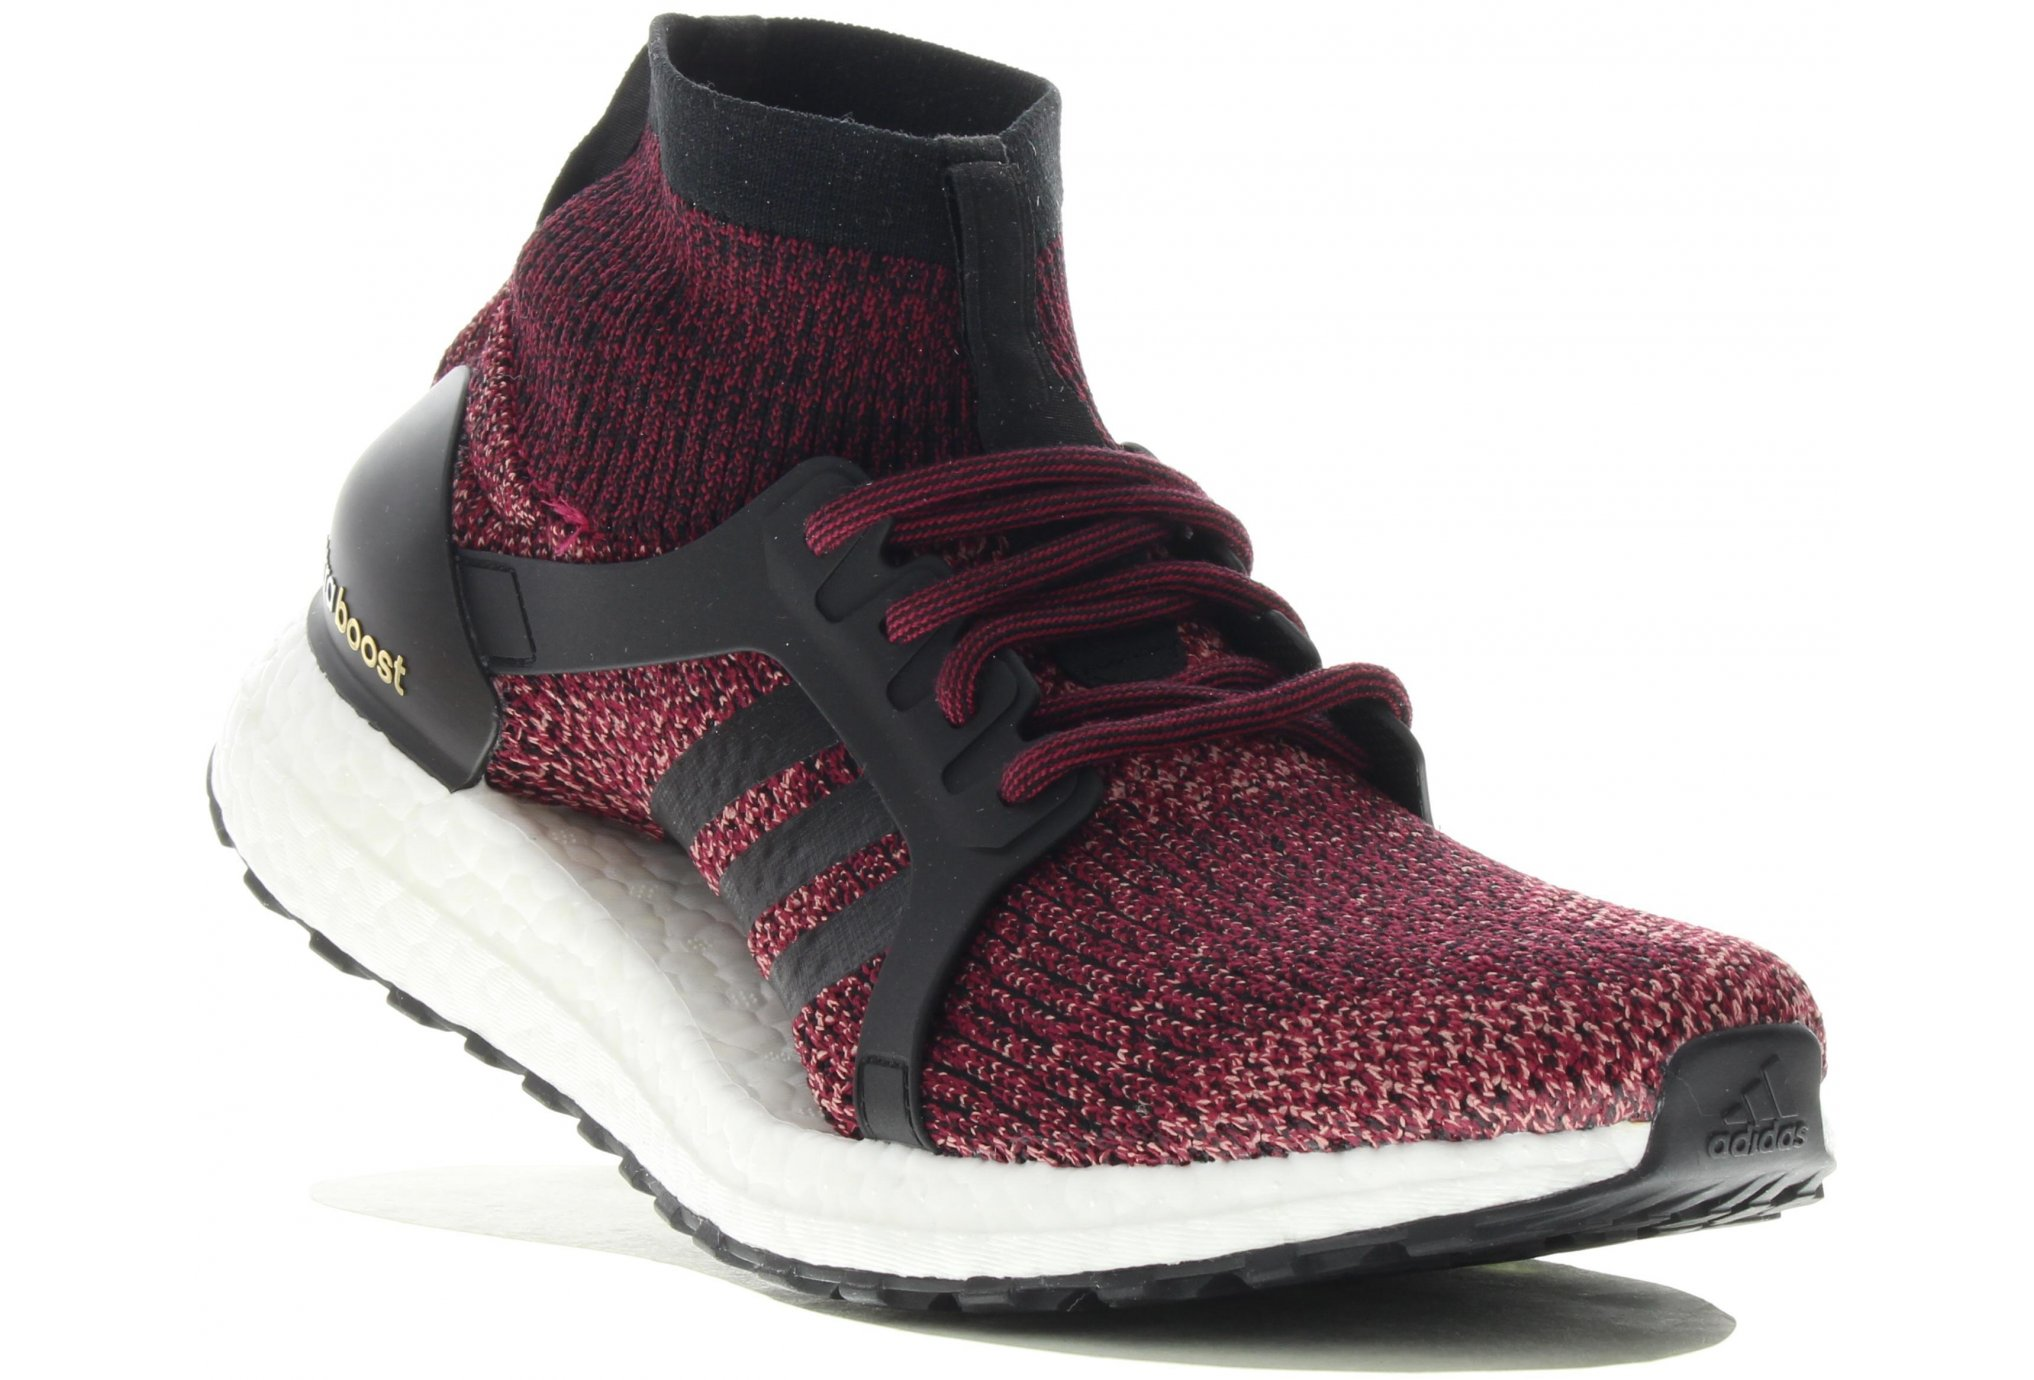 adidas-ultra-boost-x-all-terrain-w-chaussures-running-femme-185420-1-fz